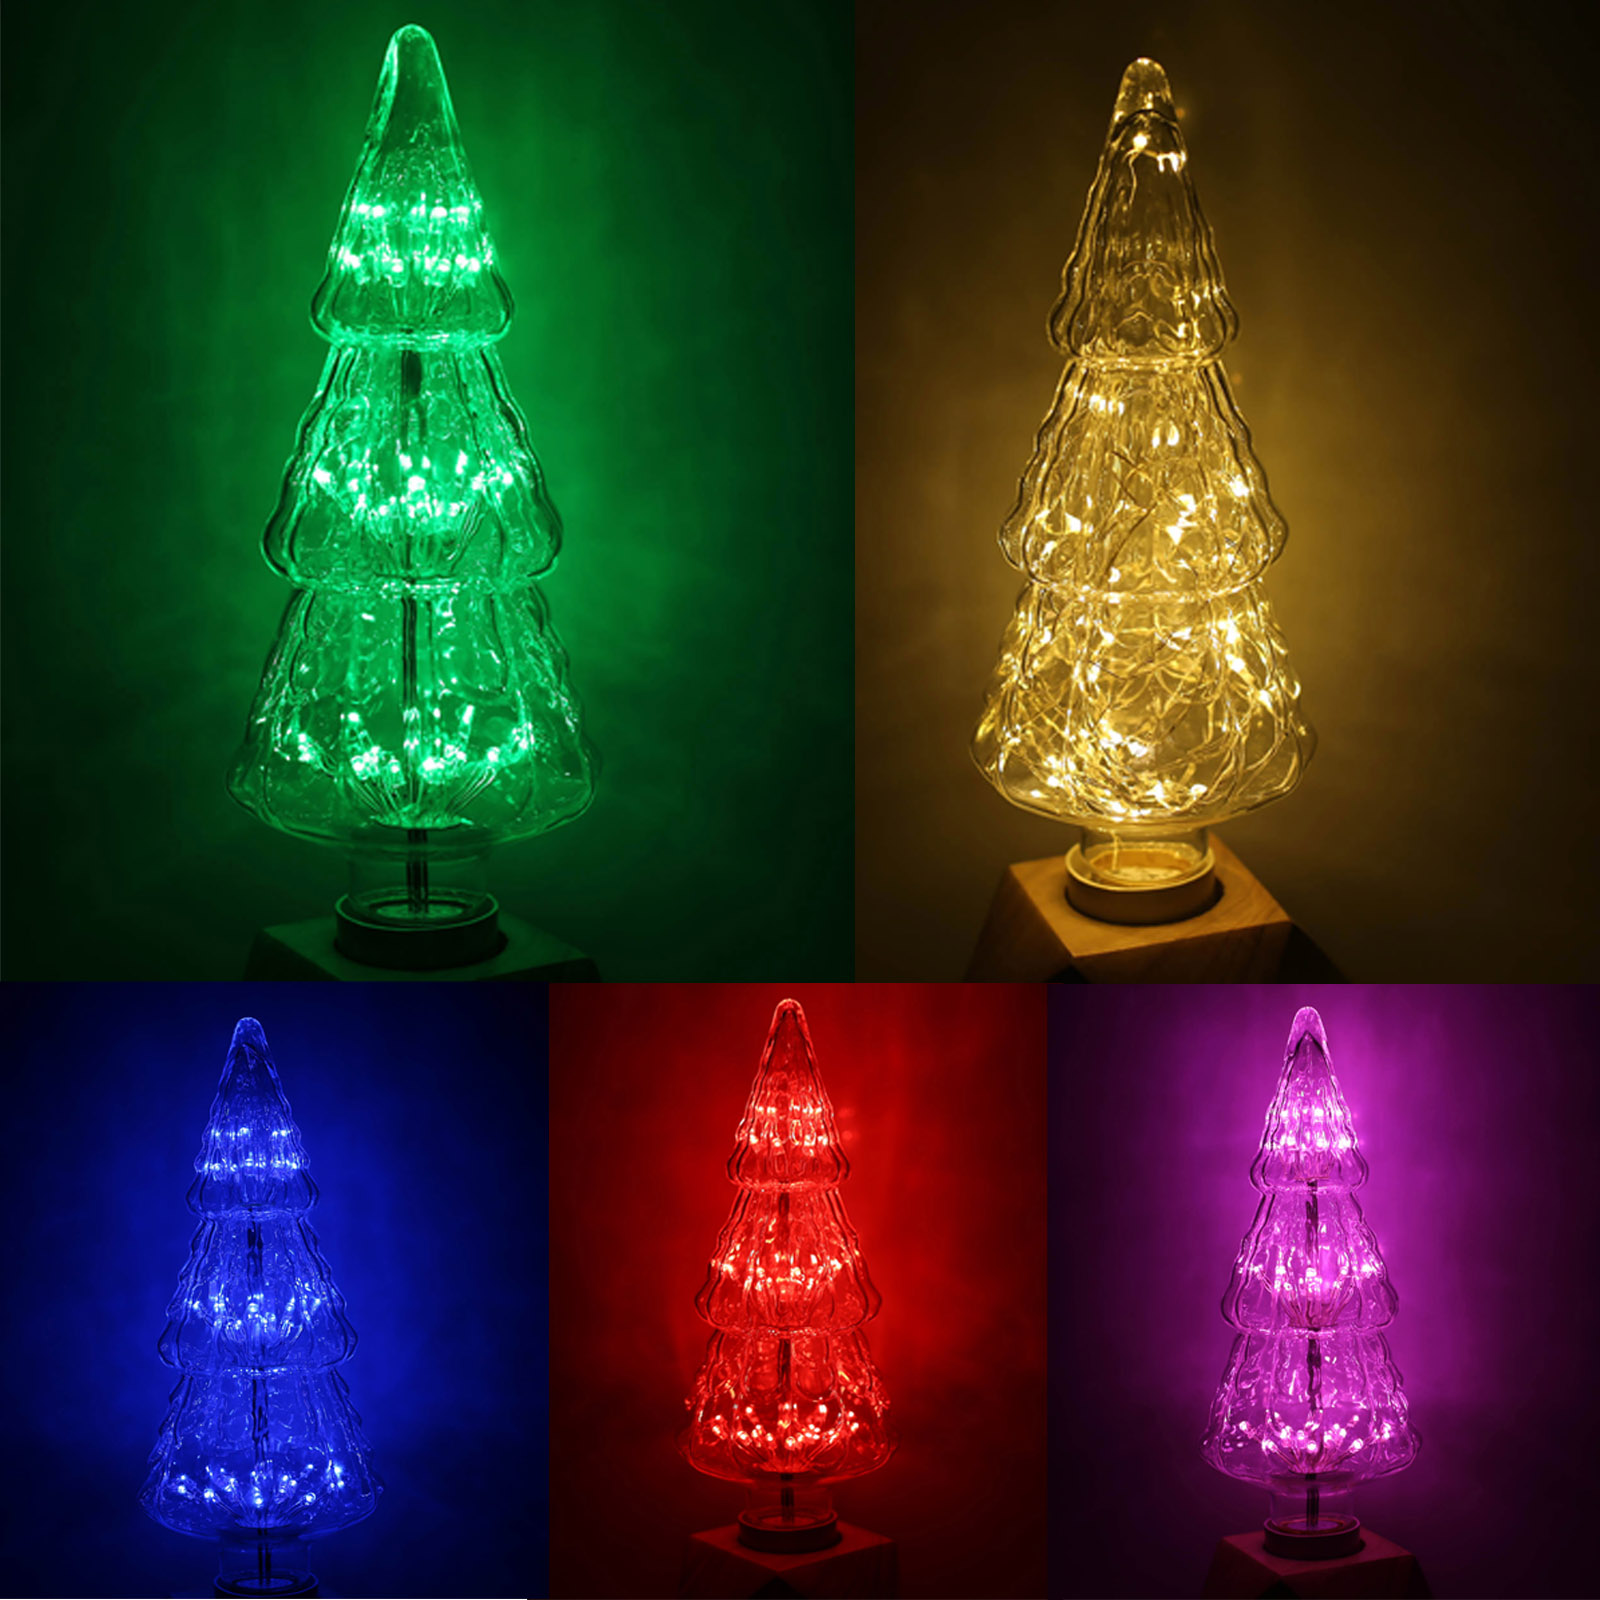 Details About E27 Led Christmas Tree Light Fairy String Lights Party Xmas Deco Lighting Lamp M